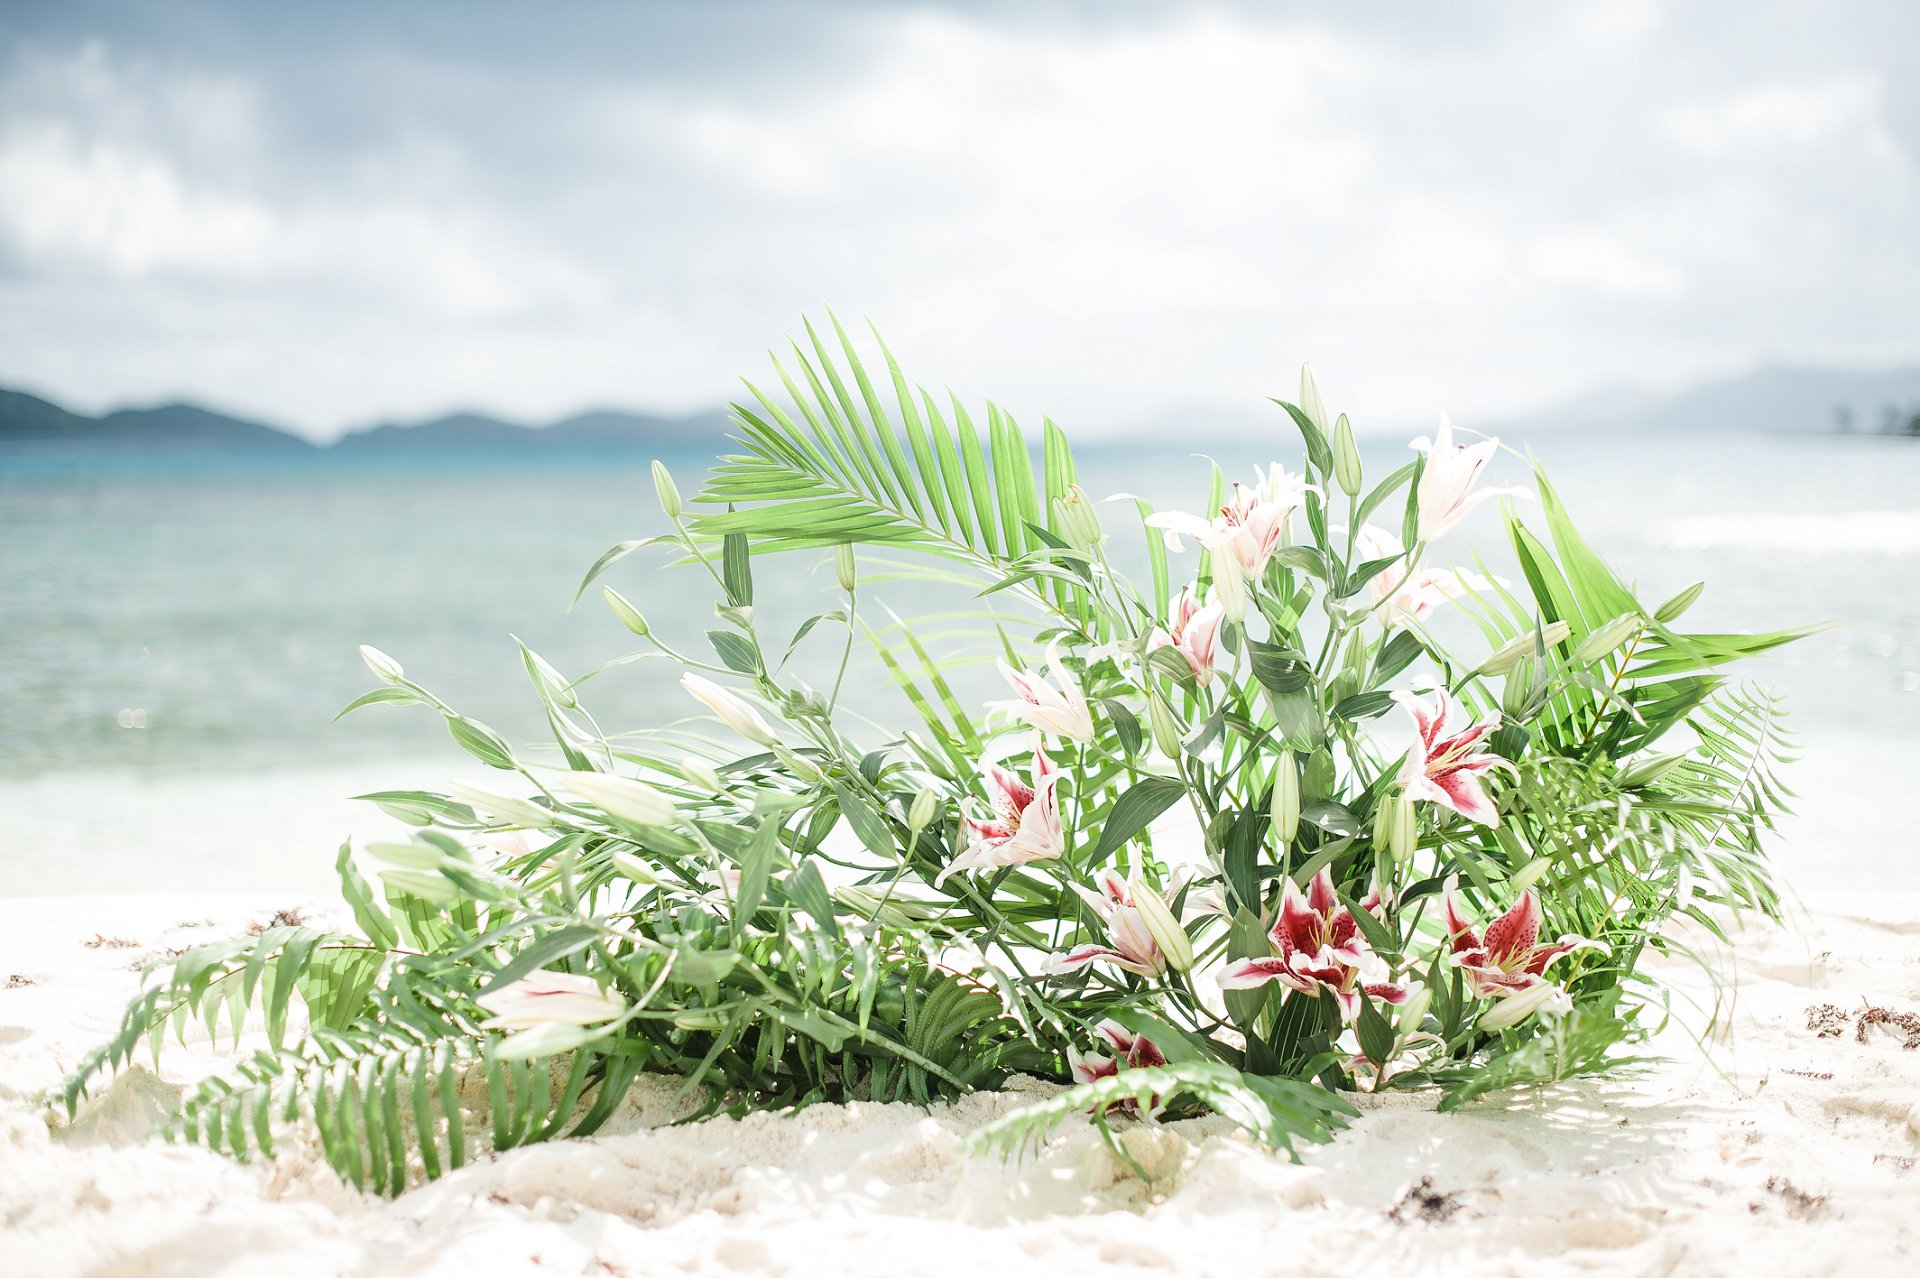 Tropical flowers, palms, ferns and lilies wedding altar for beach wedding in St. Thomas